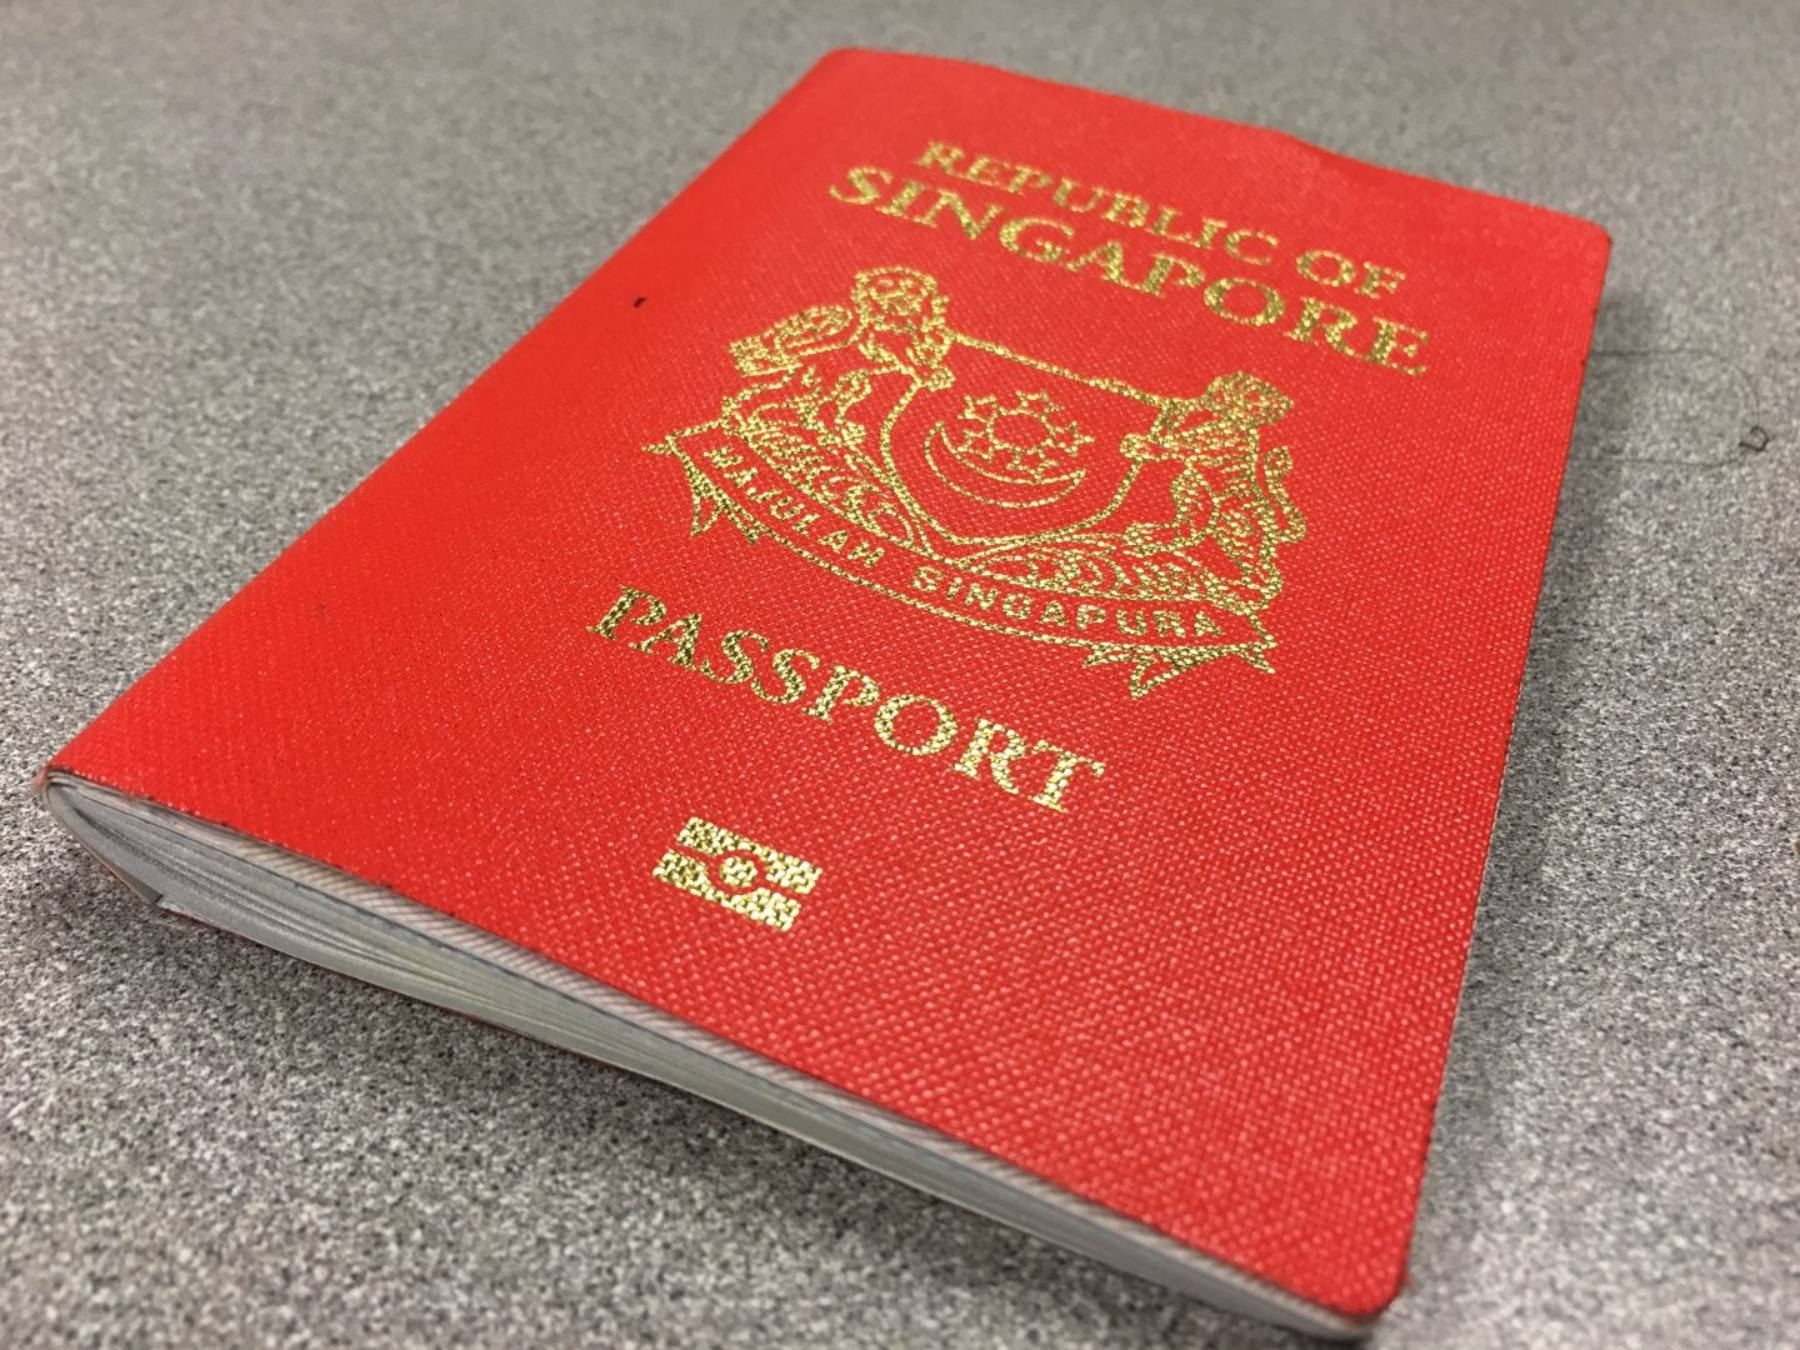 Singapore Becomes The Most Powerful Passport In The World